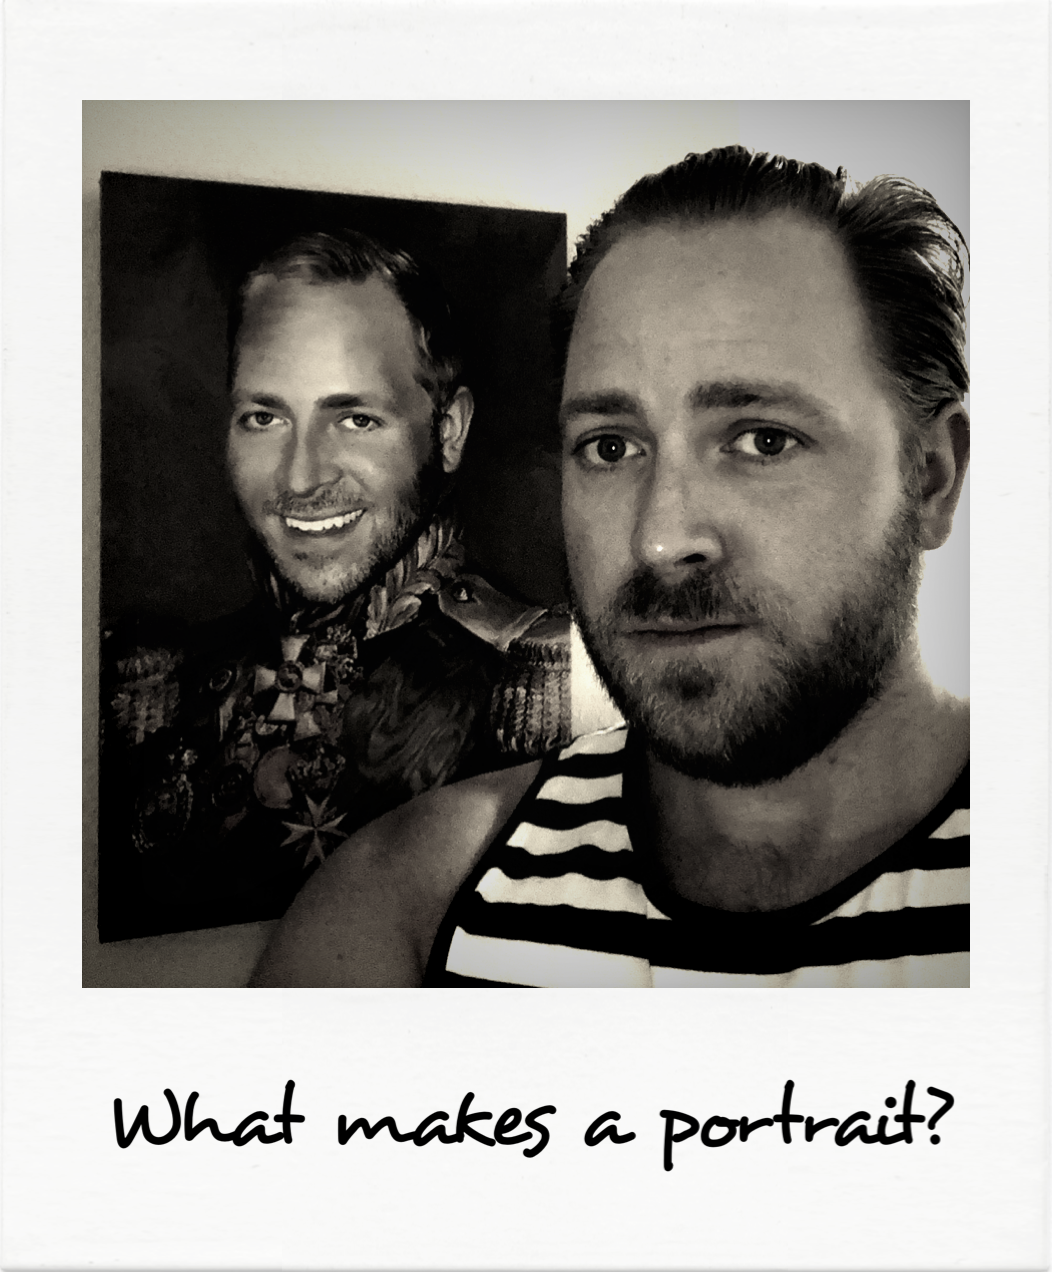 What makes a portrait?